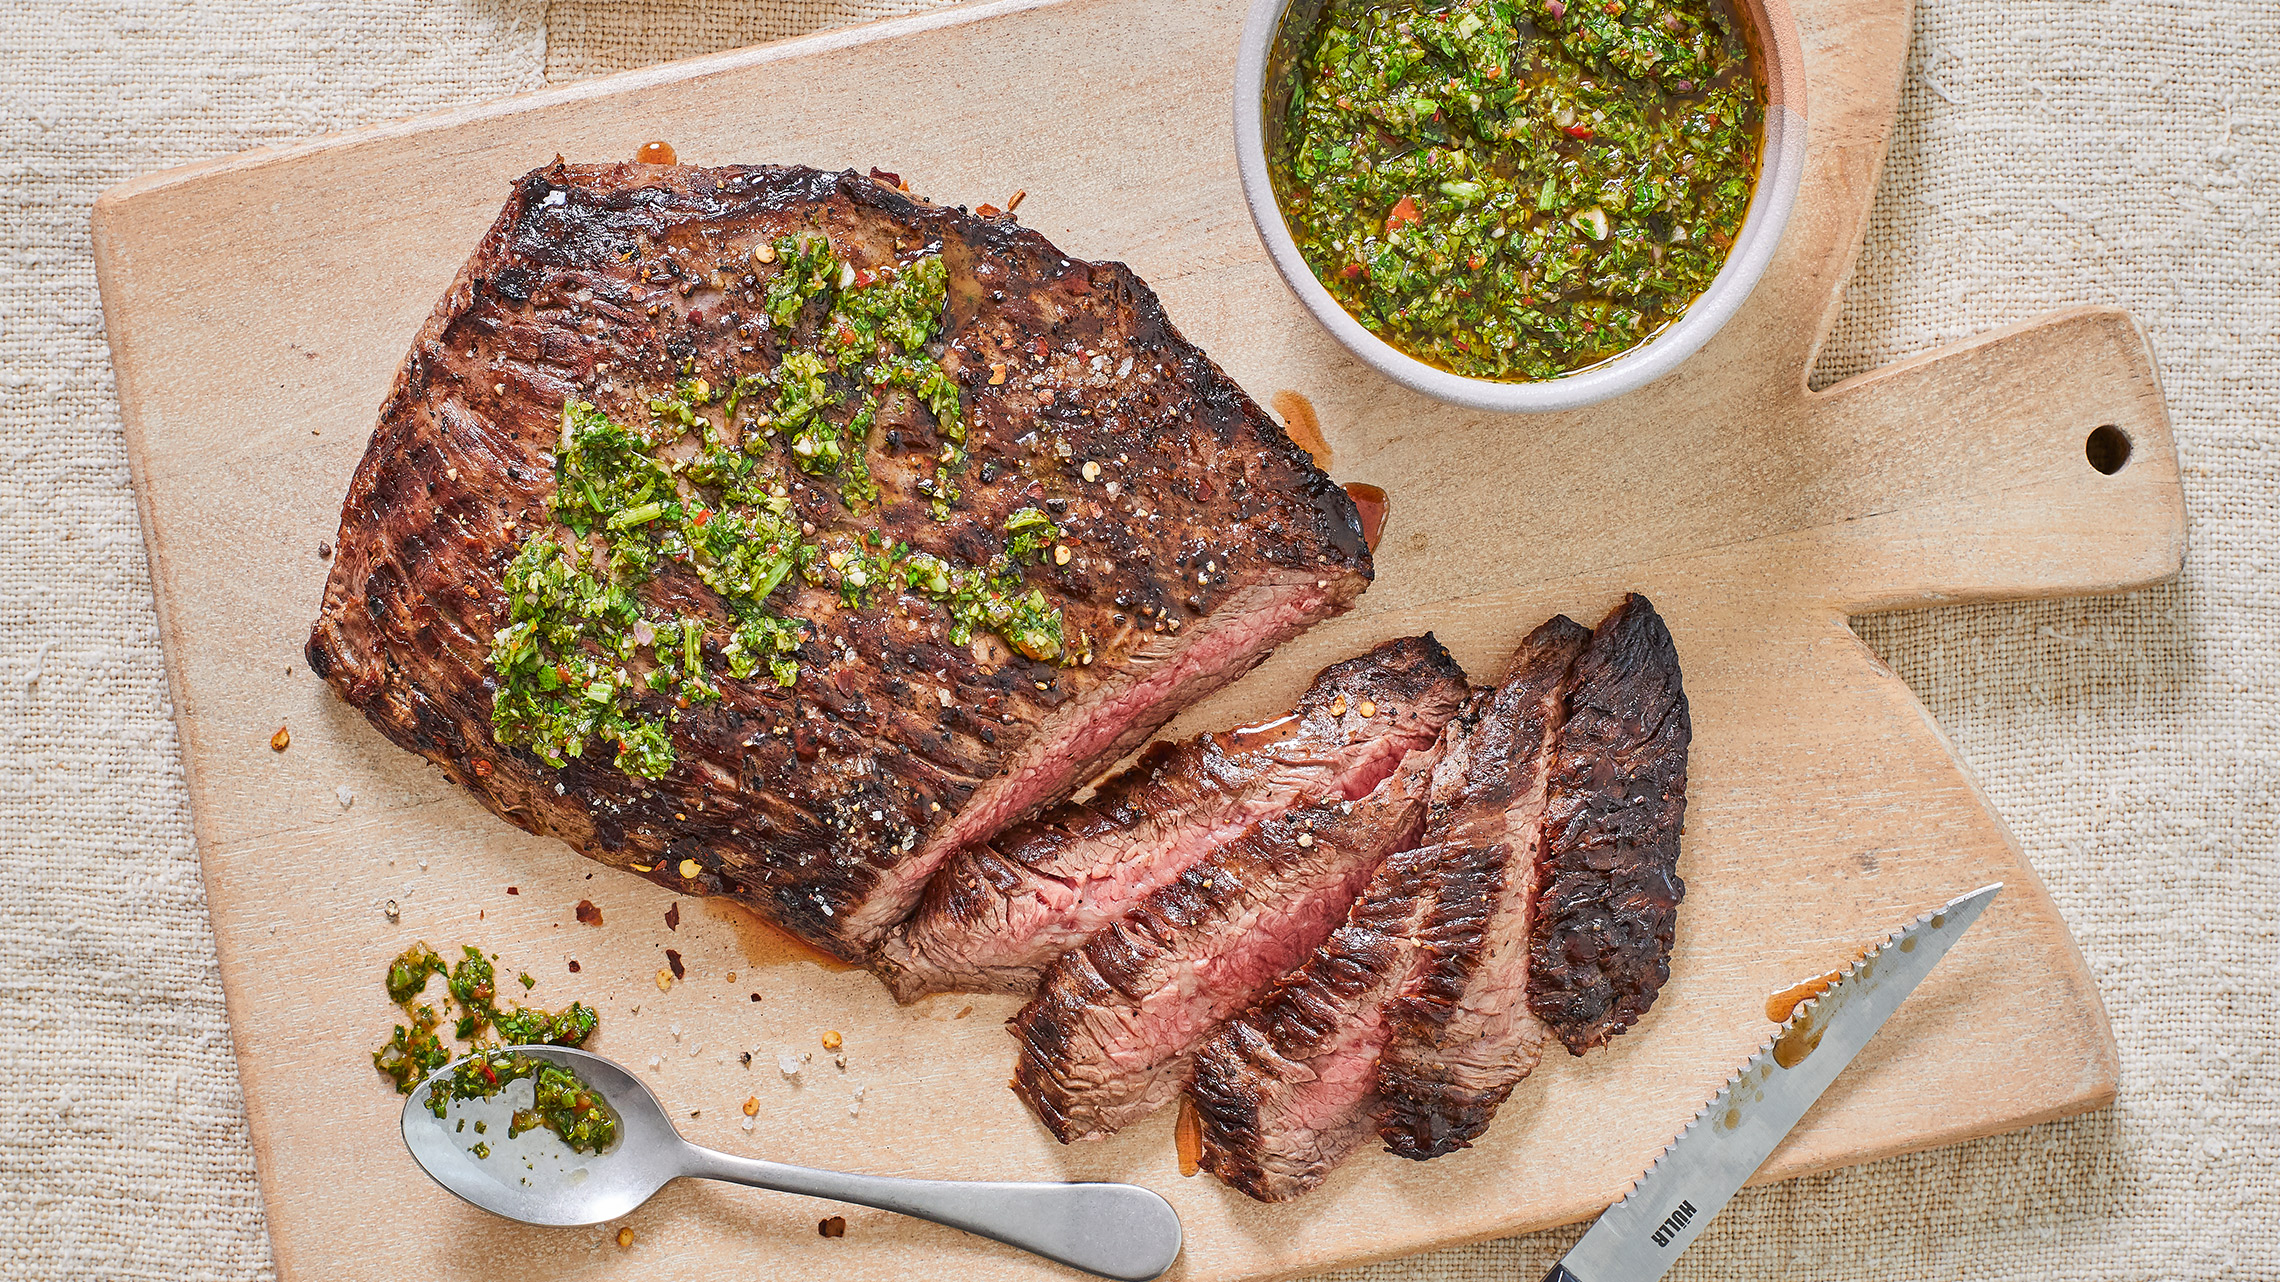 11 Common Grilling Questions, Answered by Our Experts